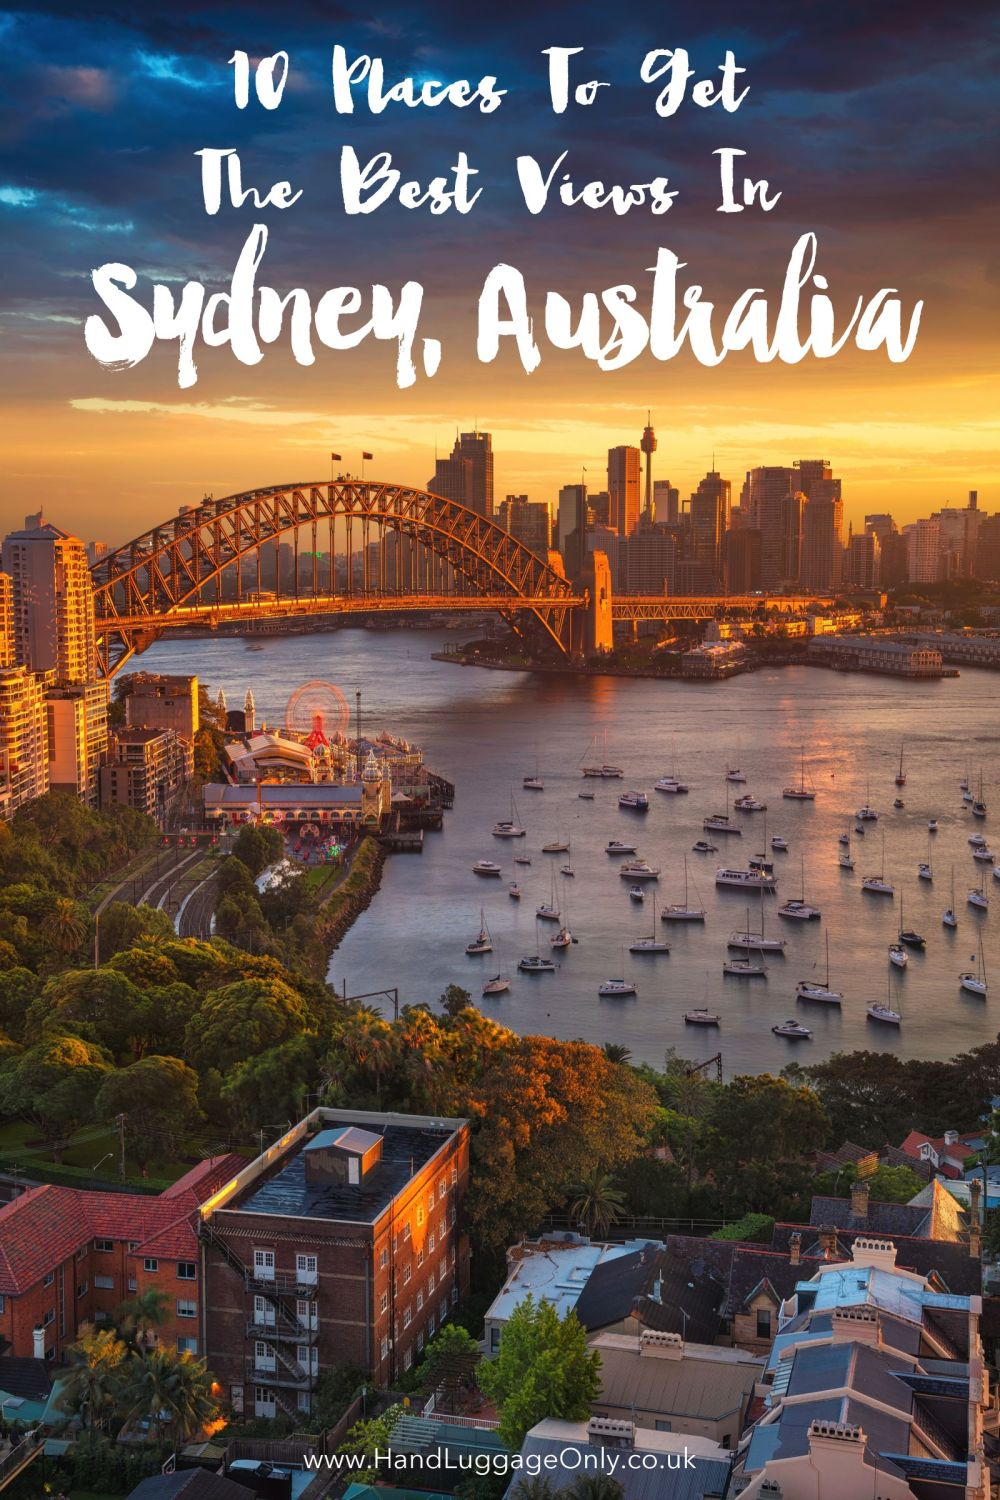 The 10 Places To Get The Best Views In Sydney, Australia (1)